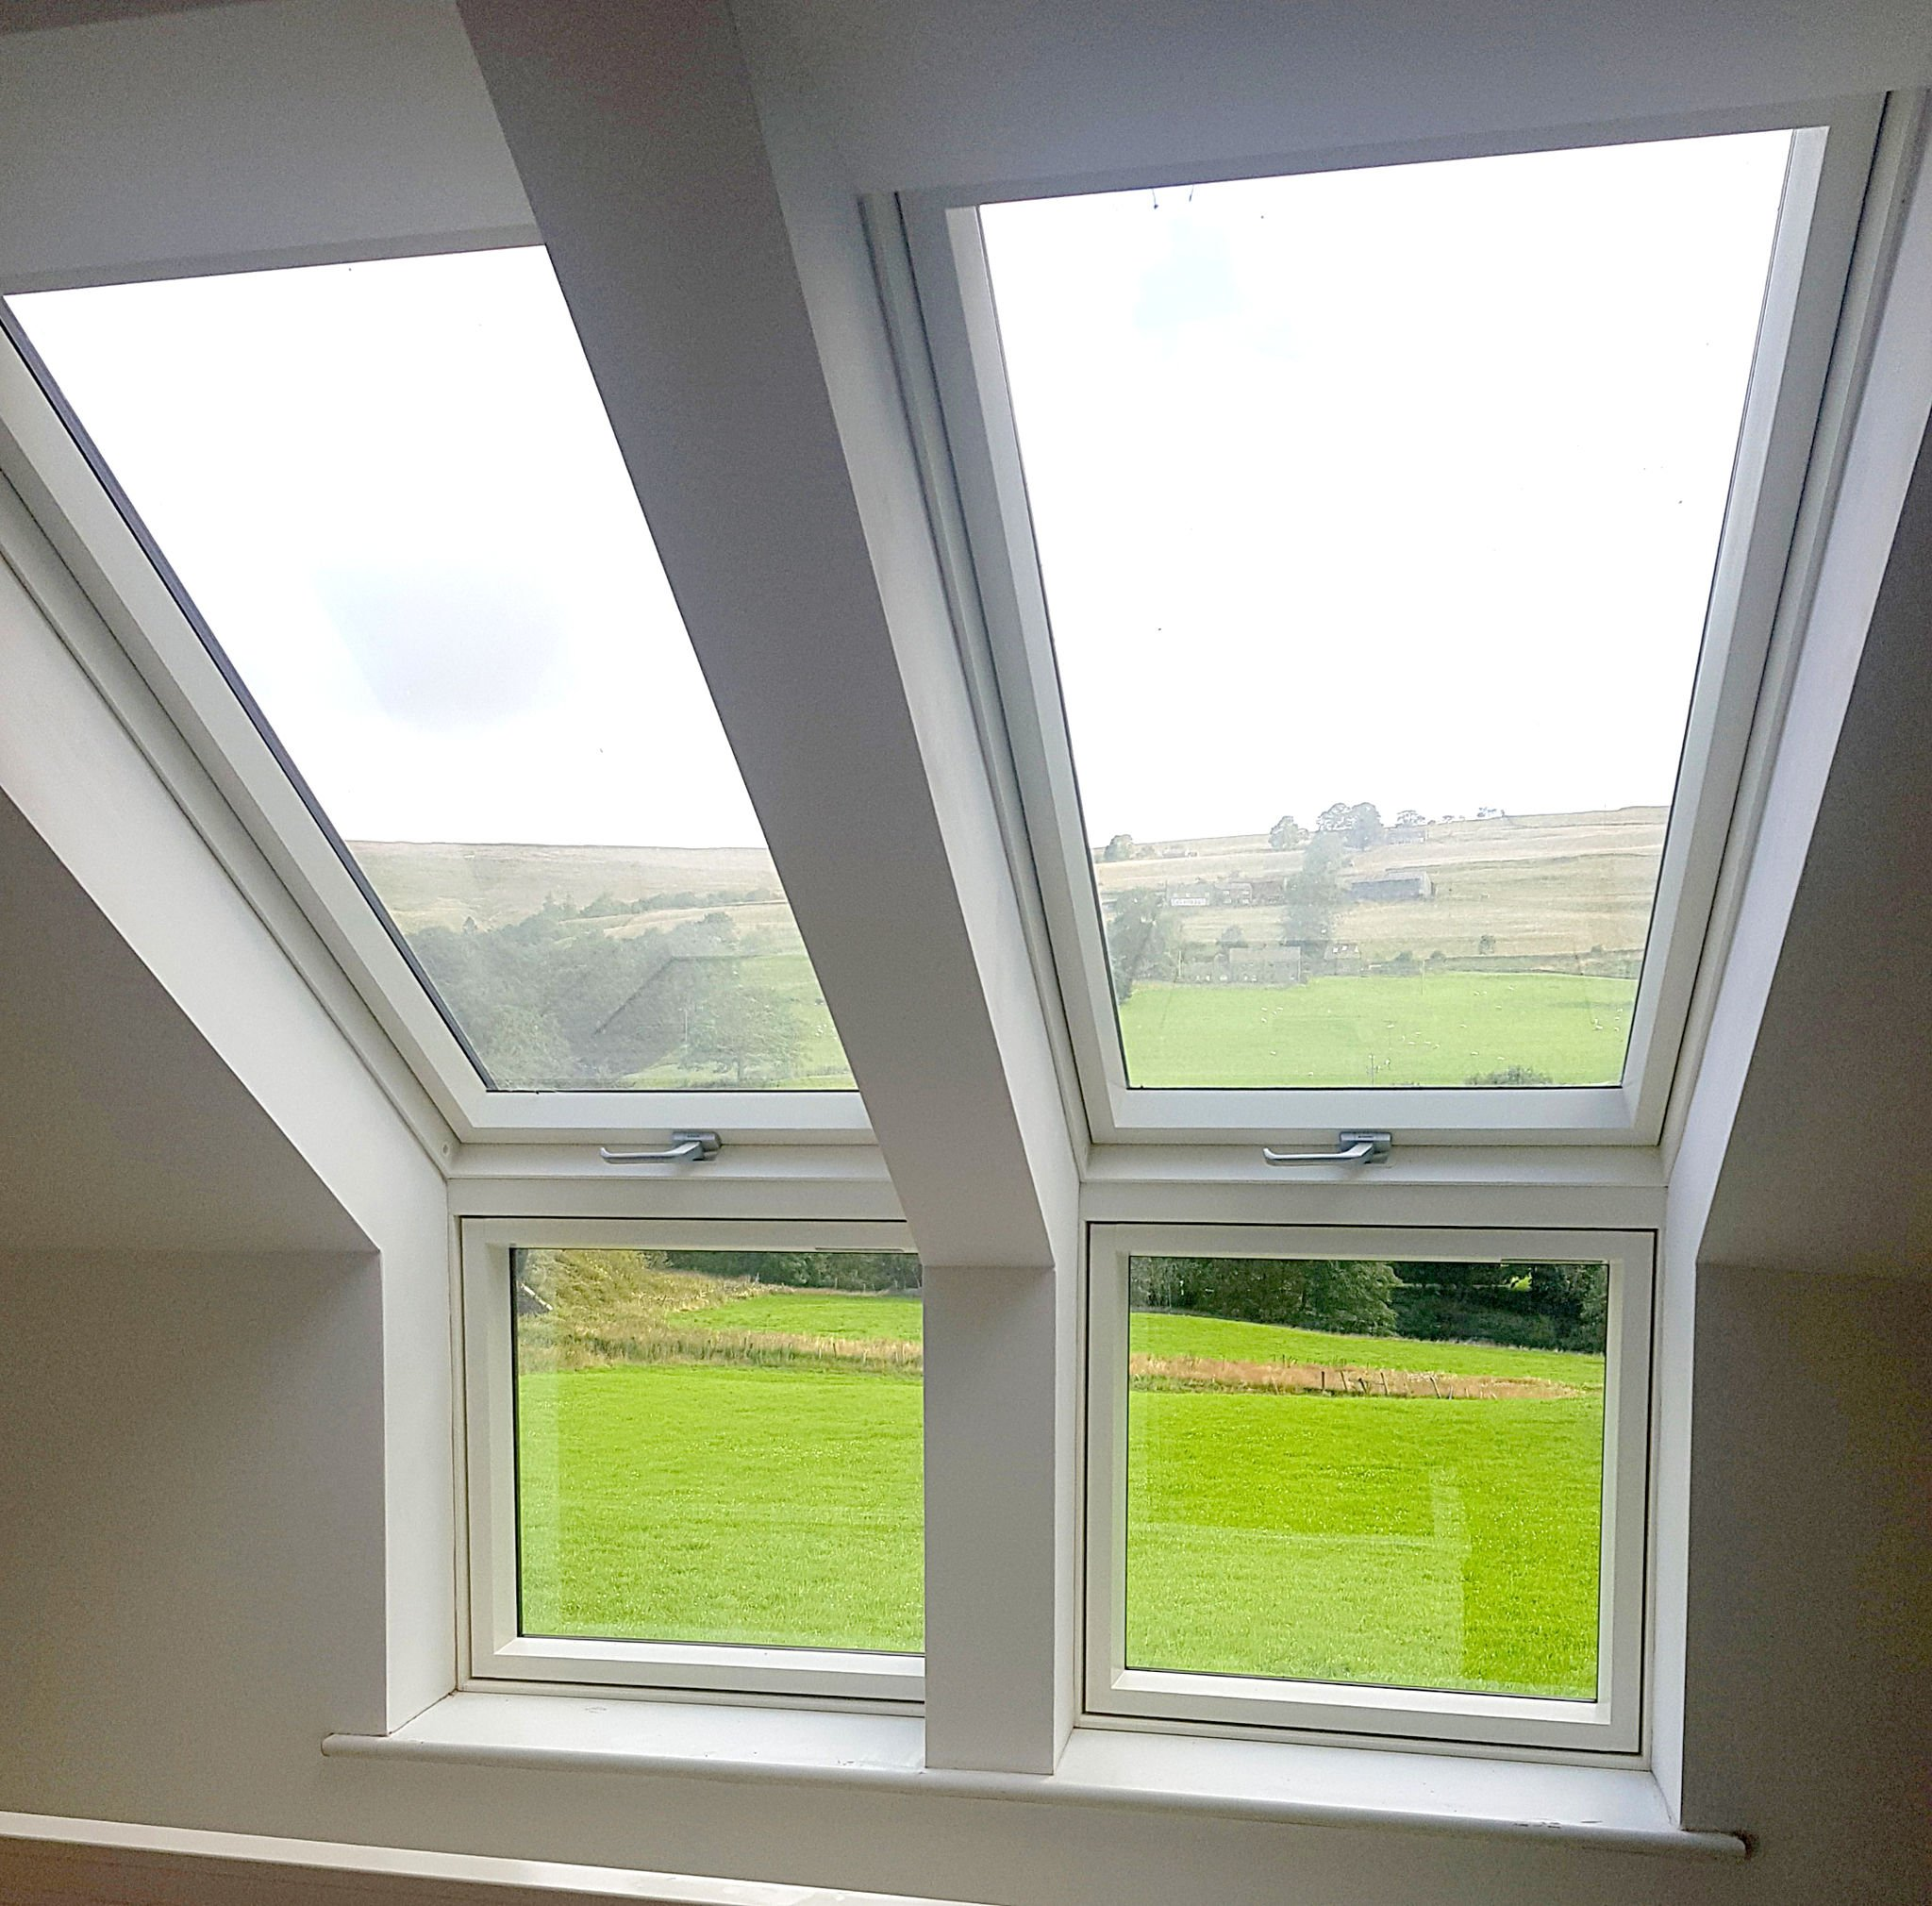 Roof windows revealing view of countryside